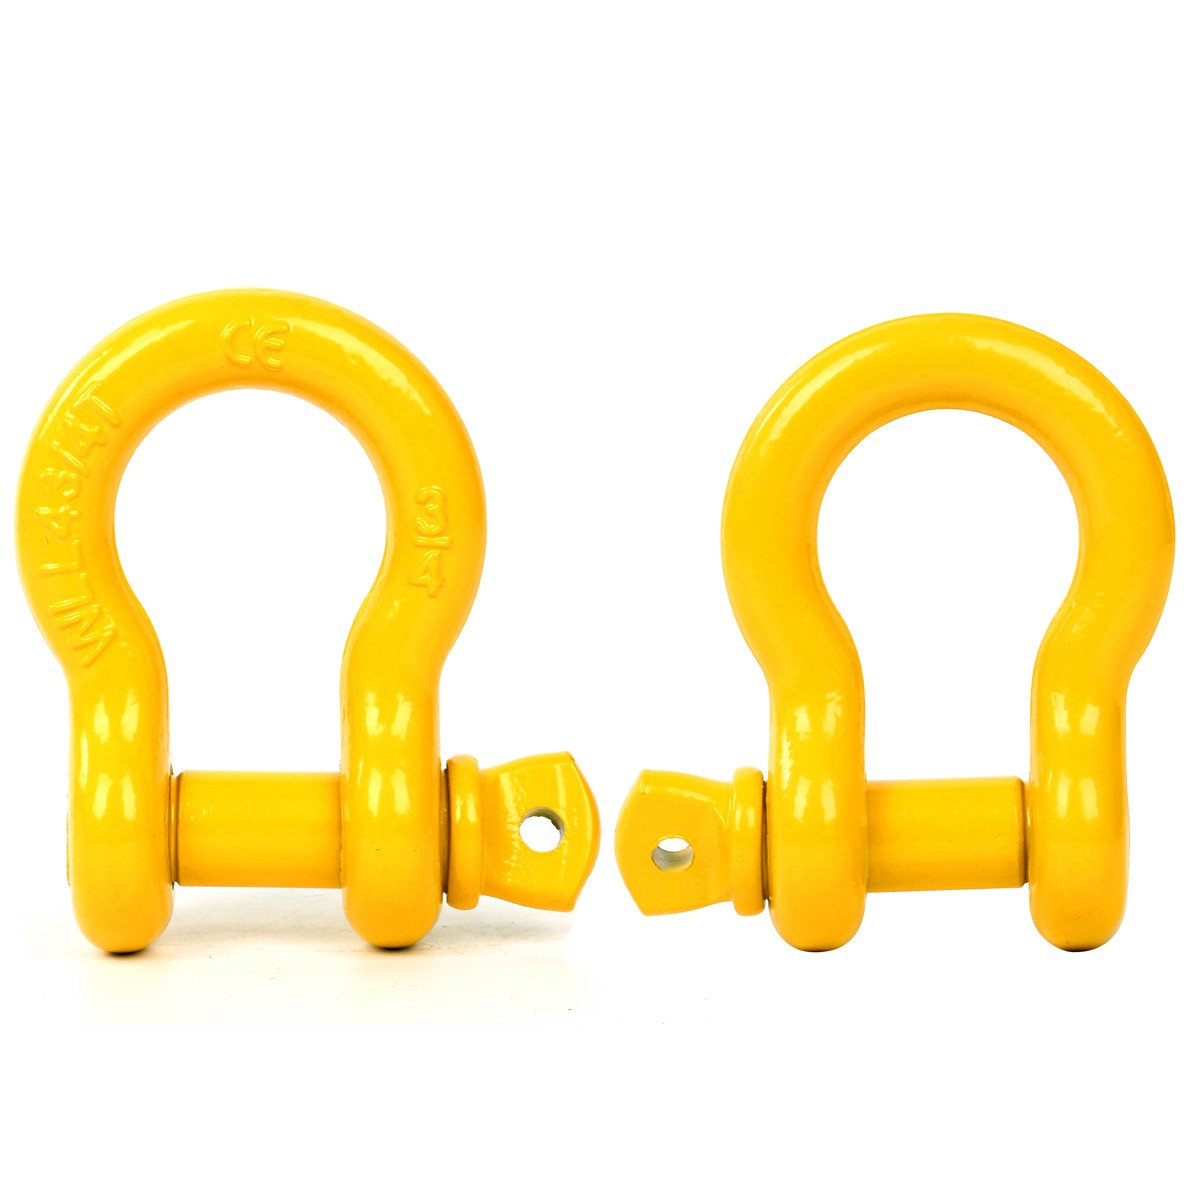 8MILELAKE 3//4 D-Ring Shackle freebirdtrading SZ 9,500 Lbs 4 3//4 tons WLL D-Ring Shackle Isolator Heavy Duty Galvanized D Ring for Jeep Vehicle Recovery 2 Pack